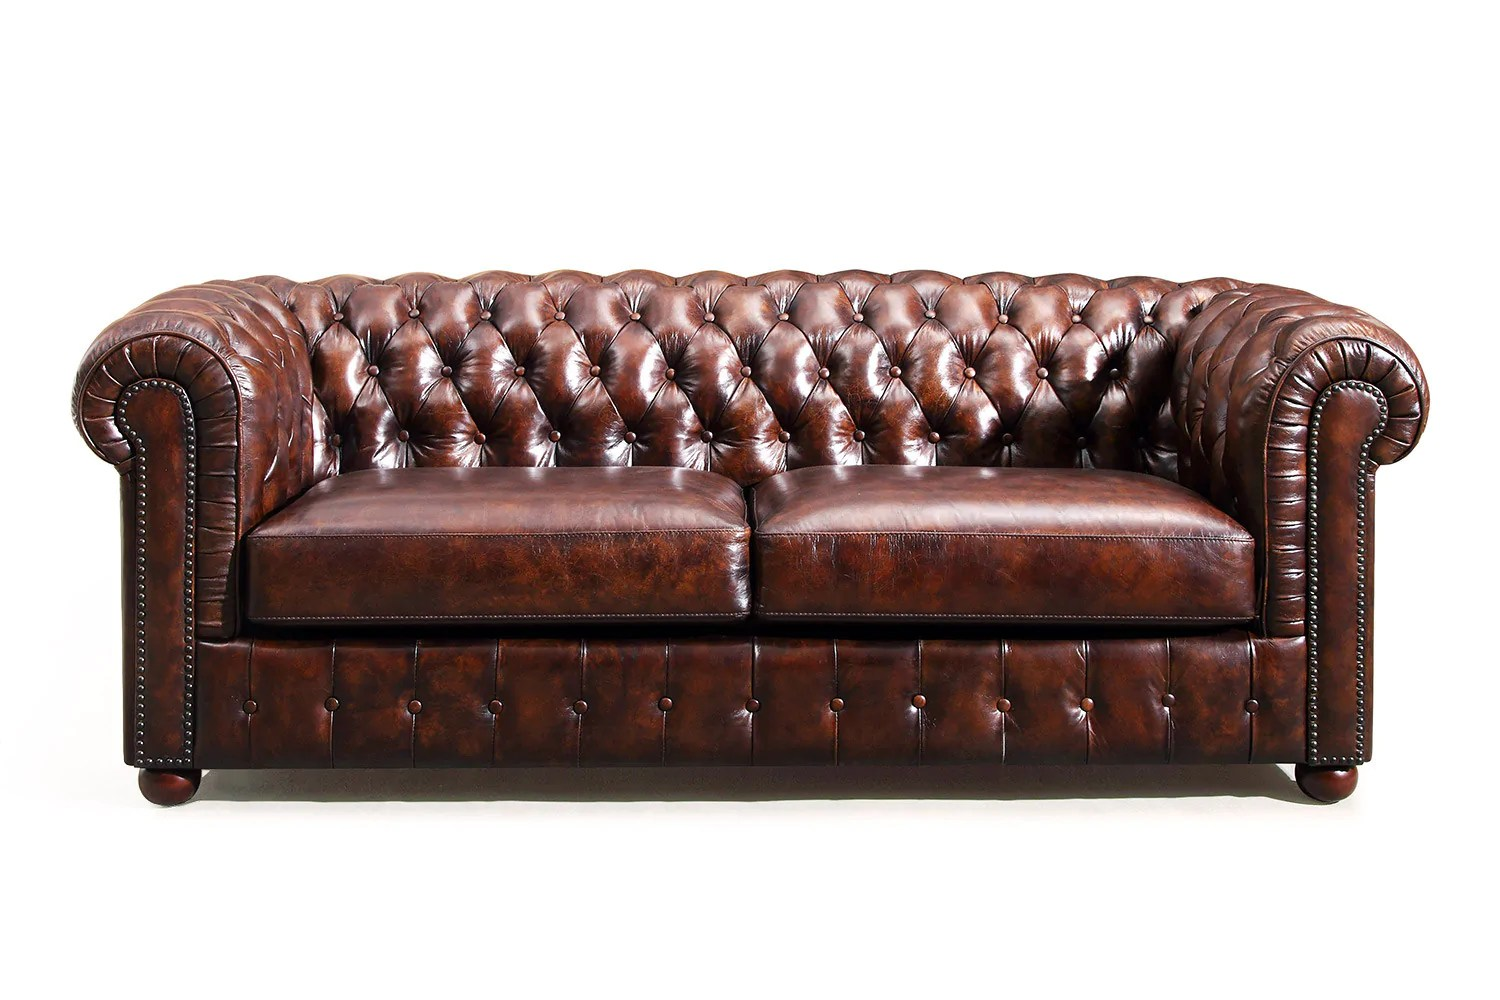 Canapés Chesterfield Canapé Chesterfield Original | Rose & Moore